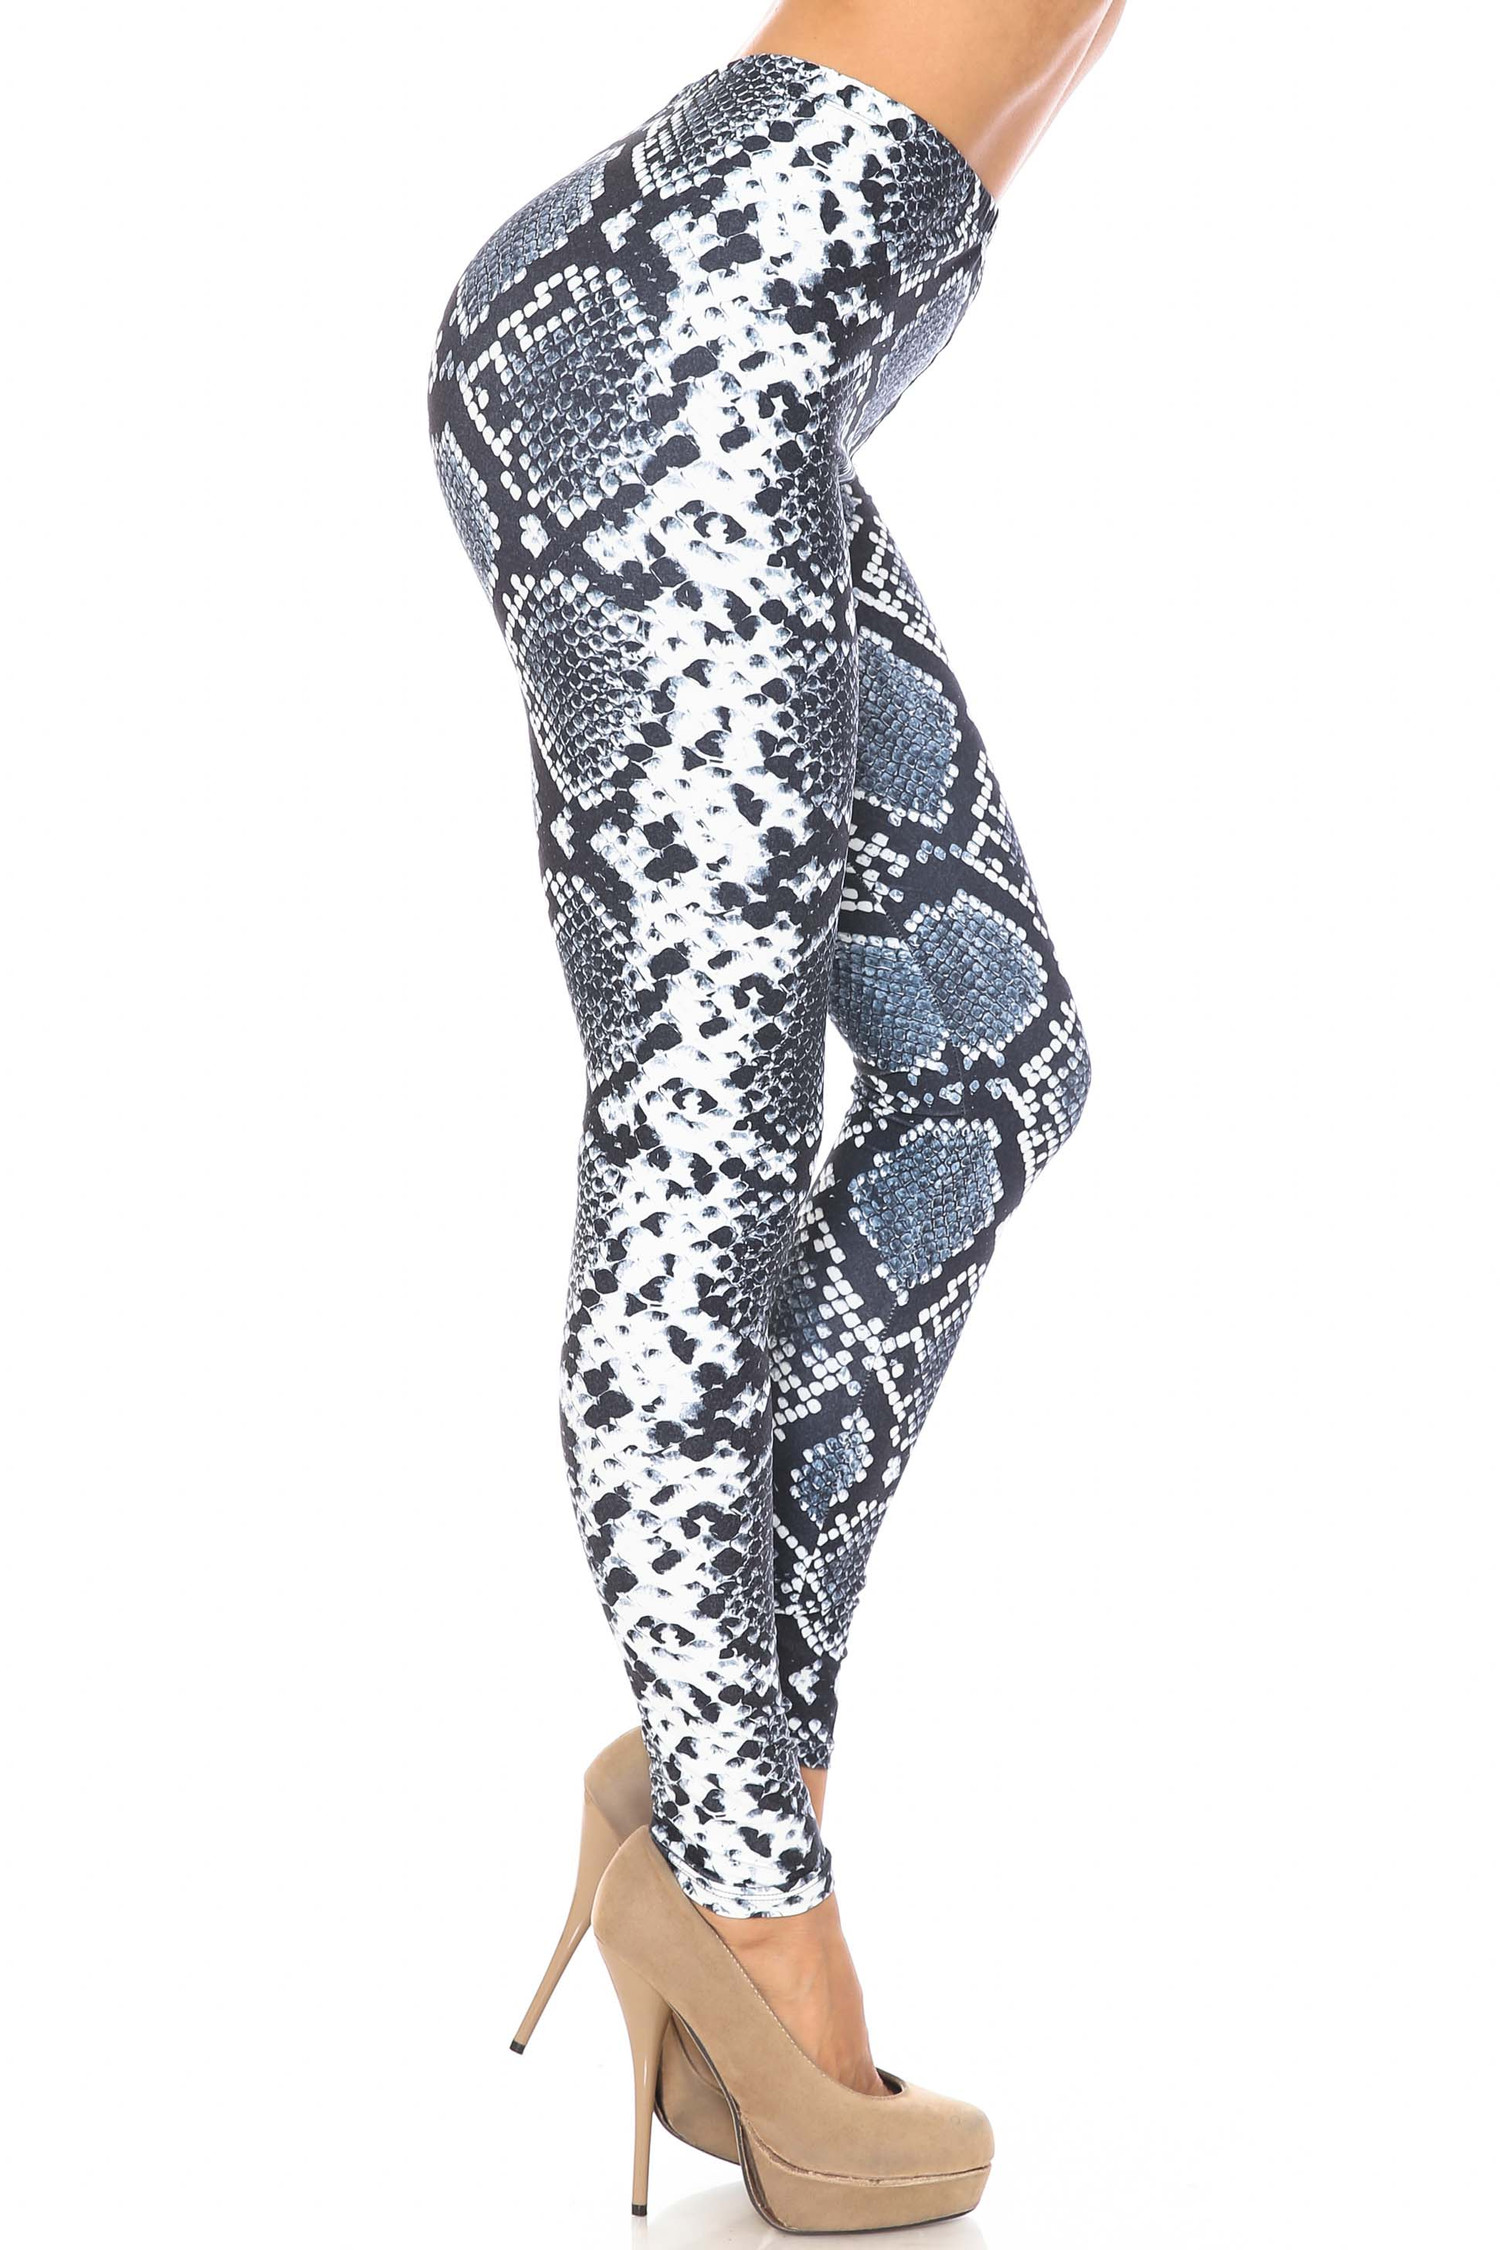 Right side of Creamy Soft Steel Blue Boa Leggings - USA Fashion™